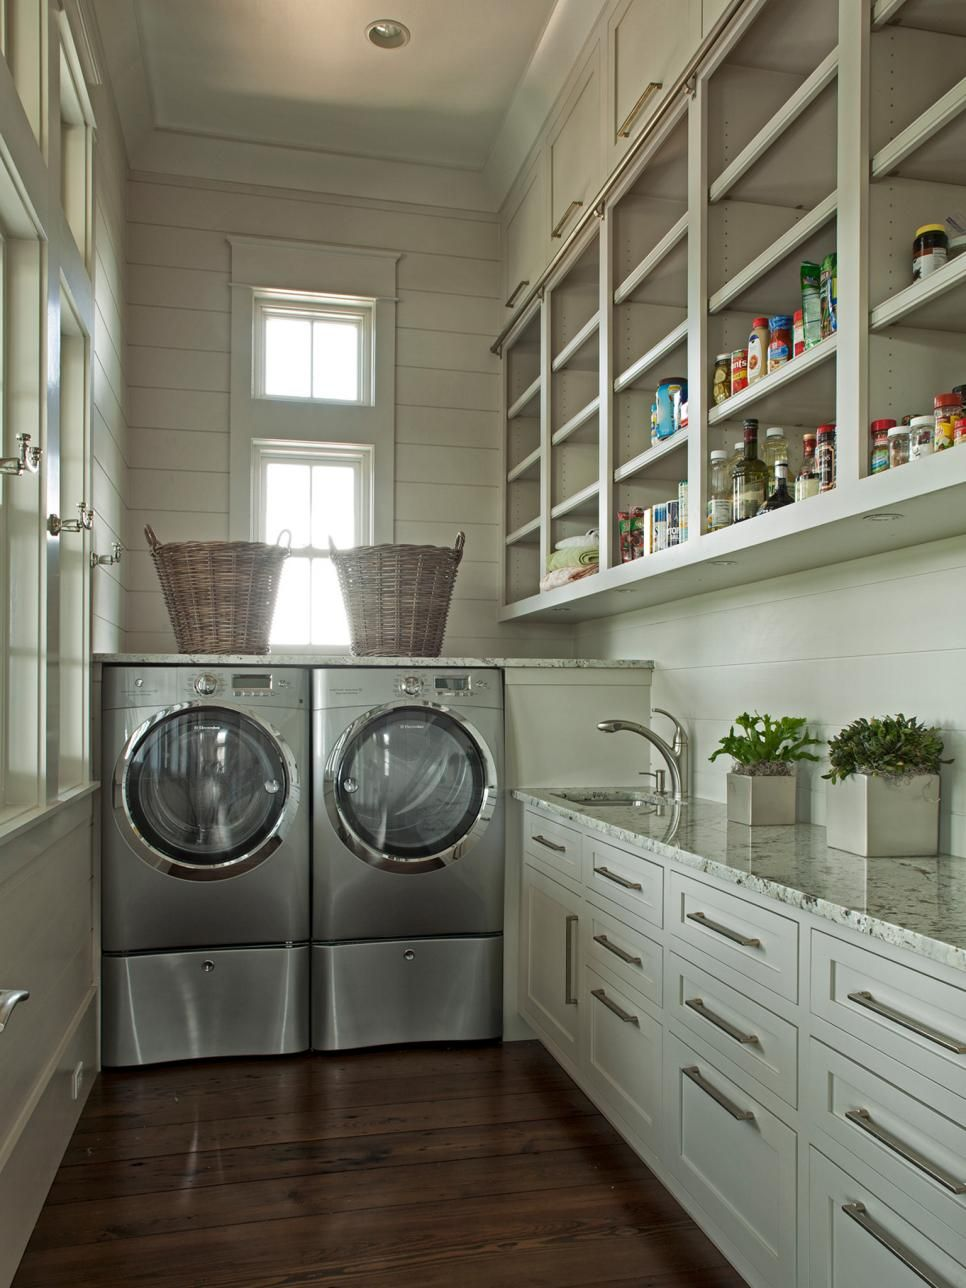 15 Clever Laundry Room Storage Ideas Pantry Laundry Room Grey Laundry Rooms Laundry Room Design